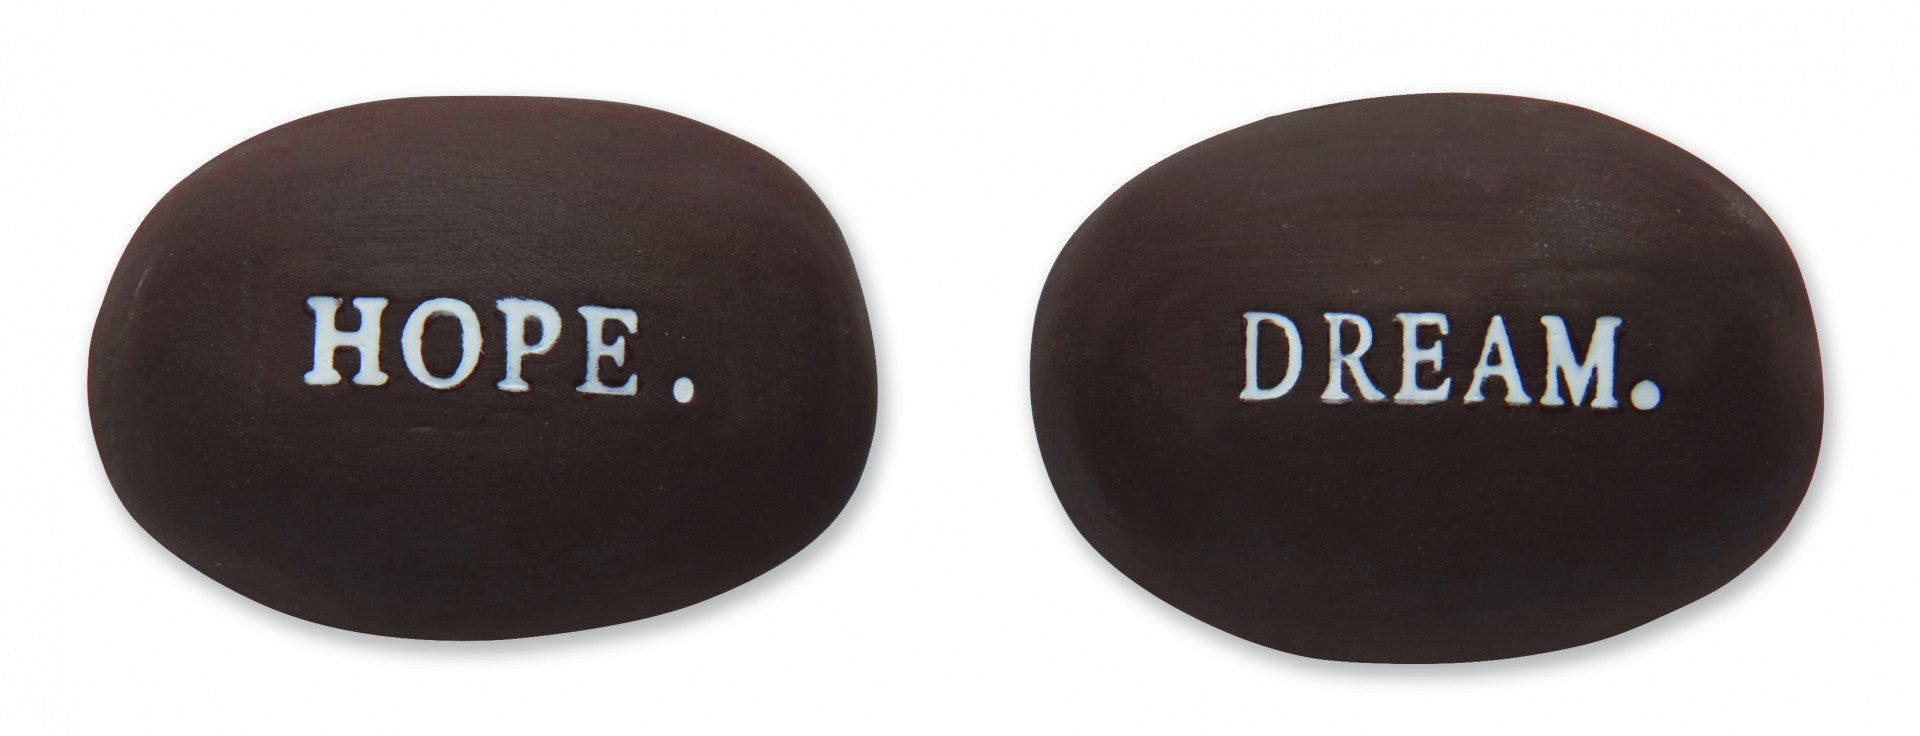 Chocolat HOPE & DREAM Word Stones - Rustic Lane Boutique